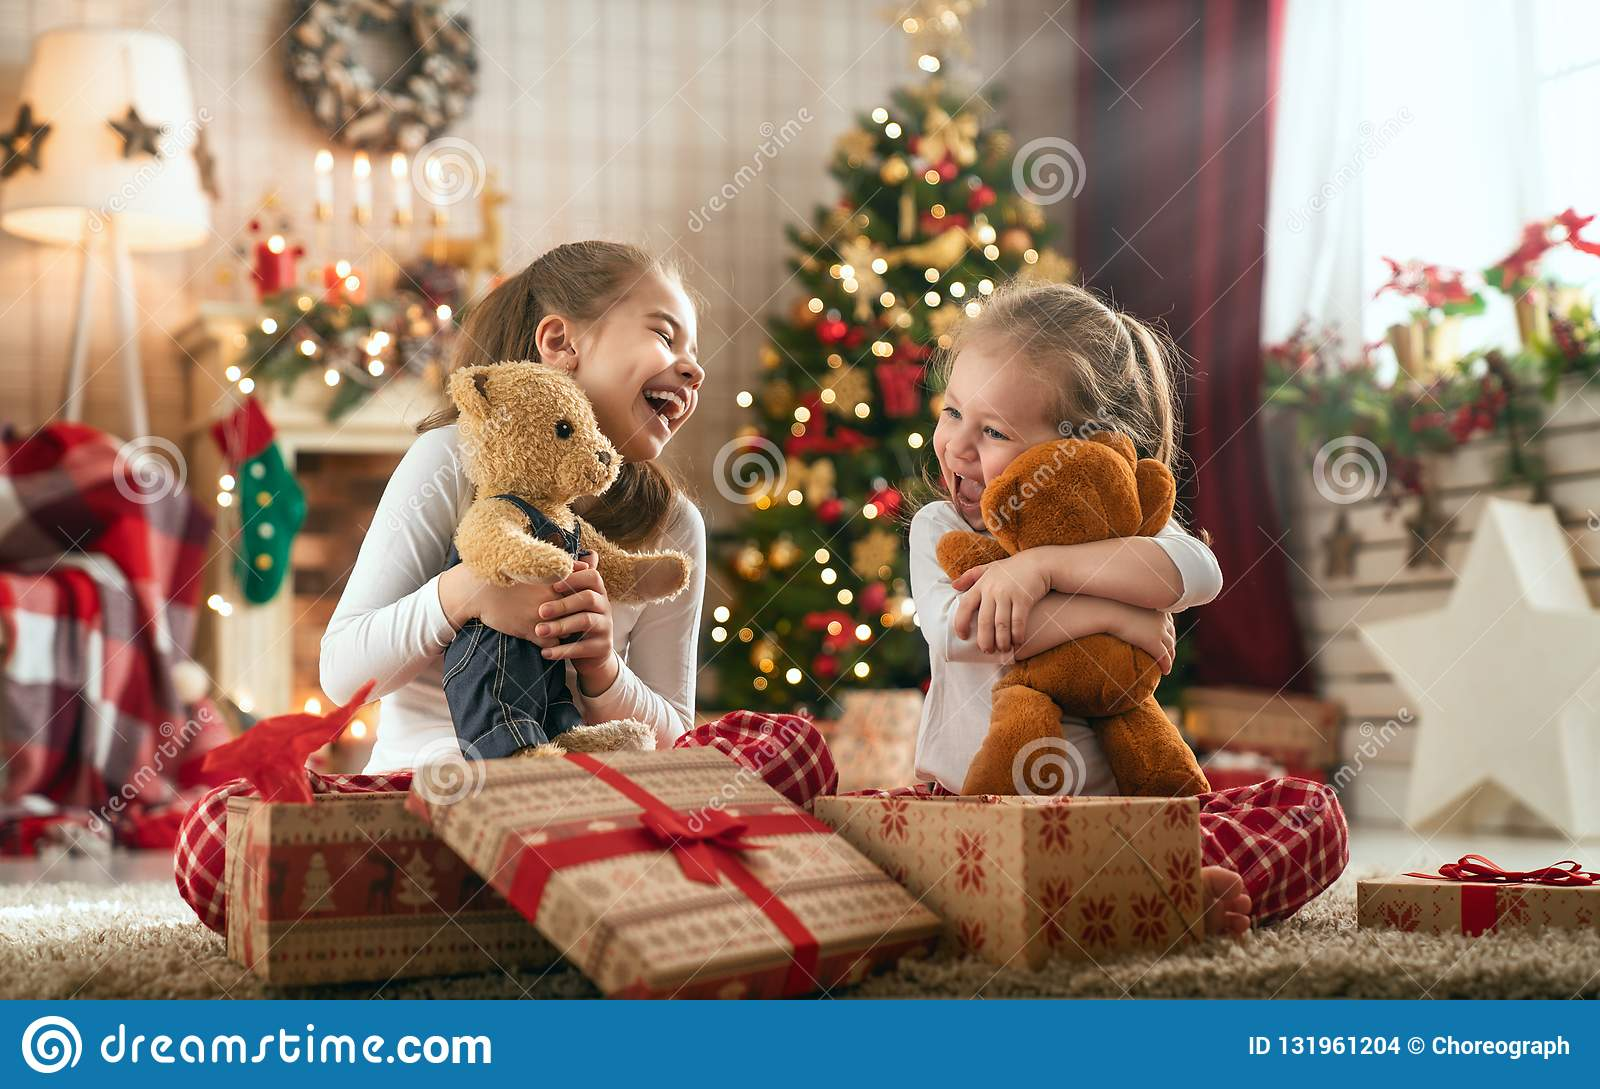 Girls Opening Christmas Gifts Stock Photo - Image of gift, family ...